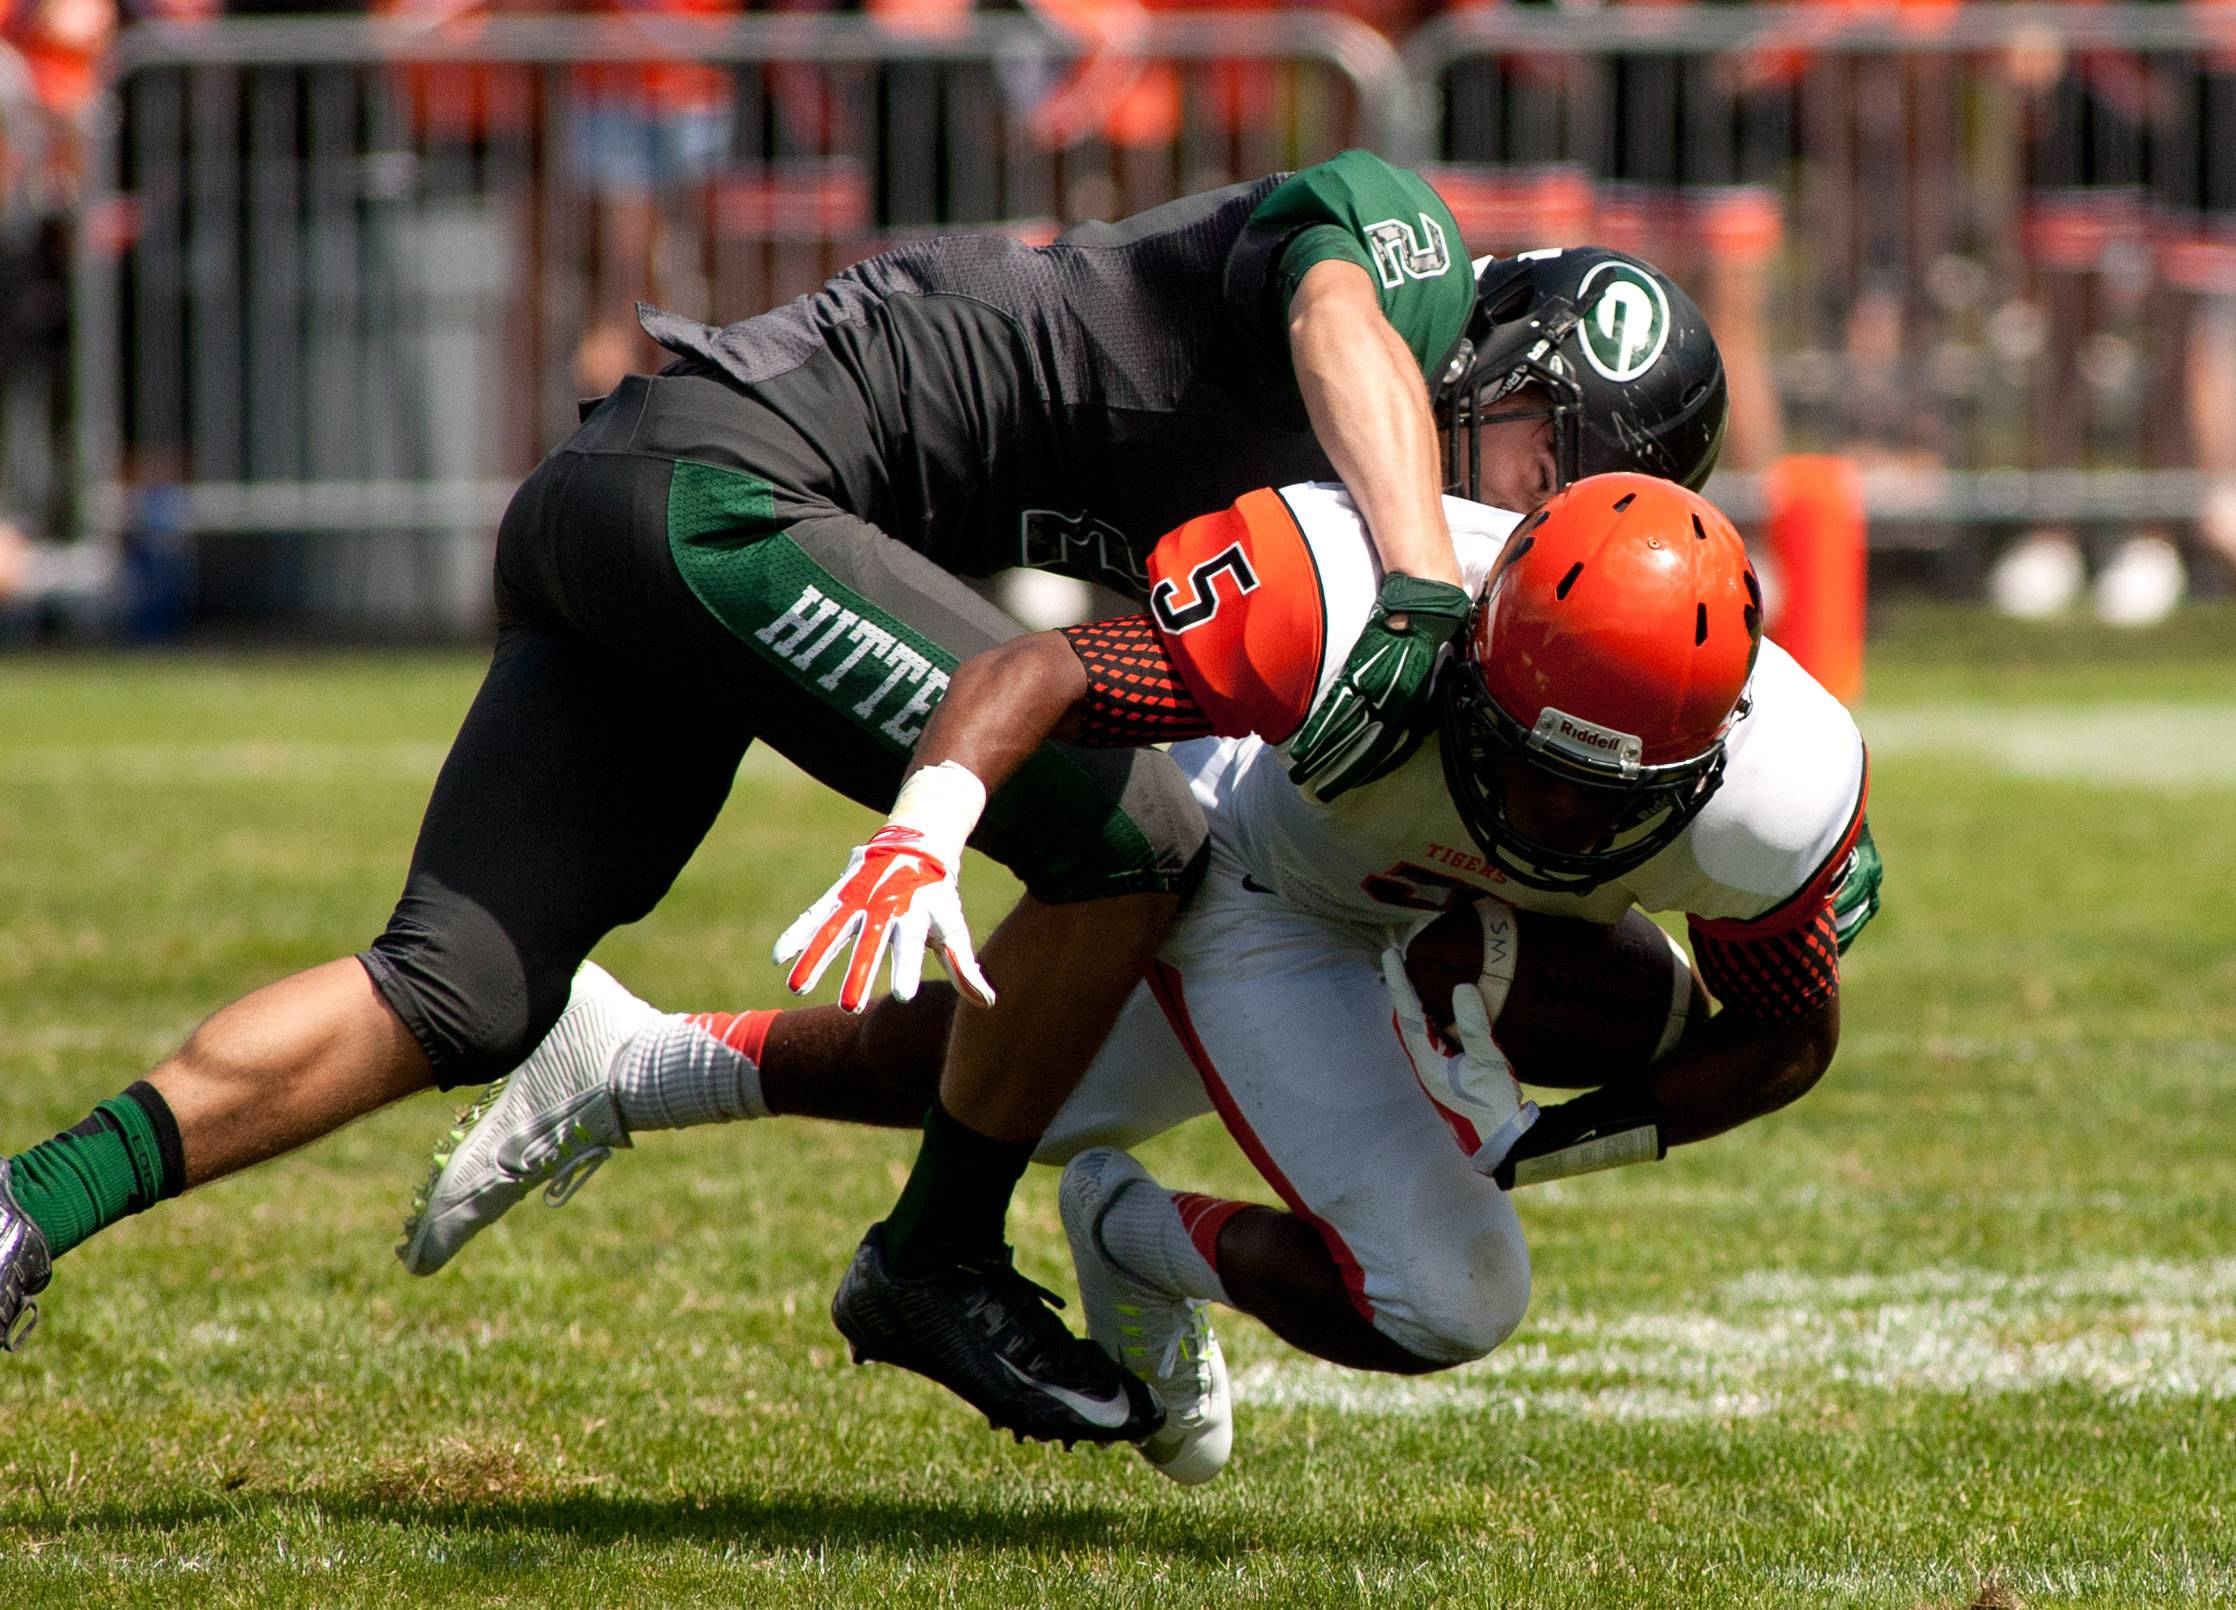 Glenbard West's Ben Marcus wraps up Wheaton Warrenville South's Keishawn Watson.